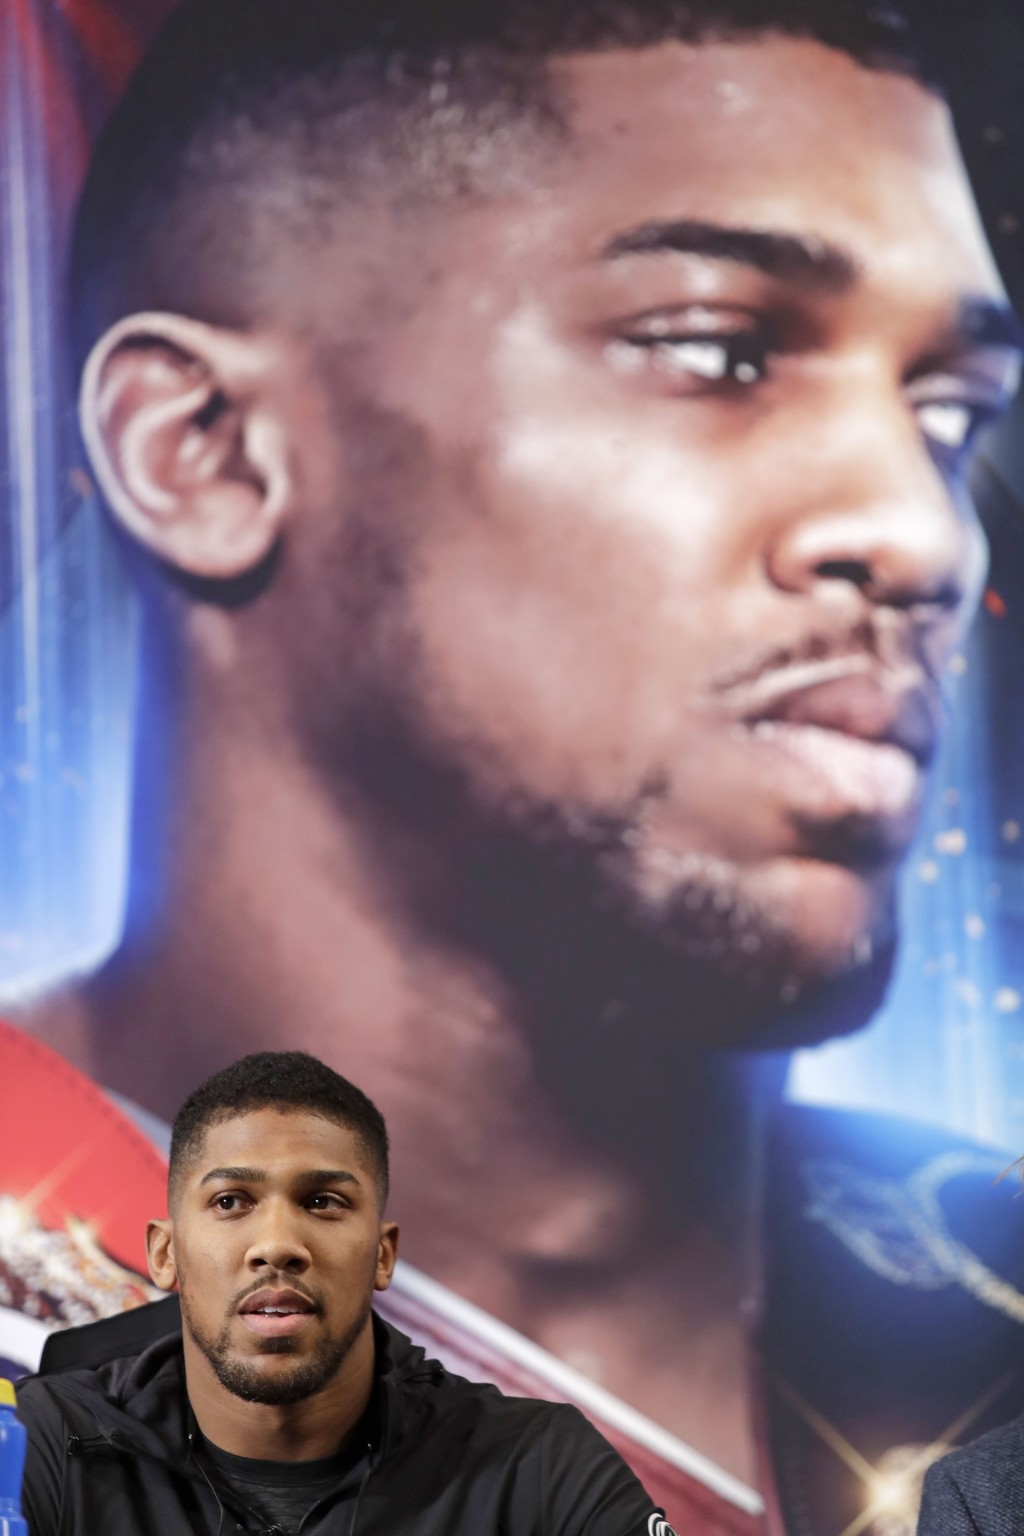 British boxer Anthony Joshua listens during a news conference, Tuesday, Feb. 19, 2019, in New York, to promote his upcoming fight against Jarrell Mill...